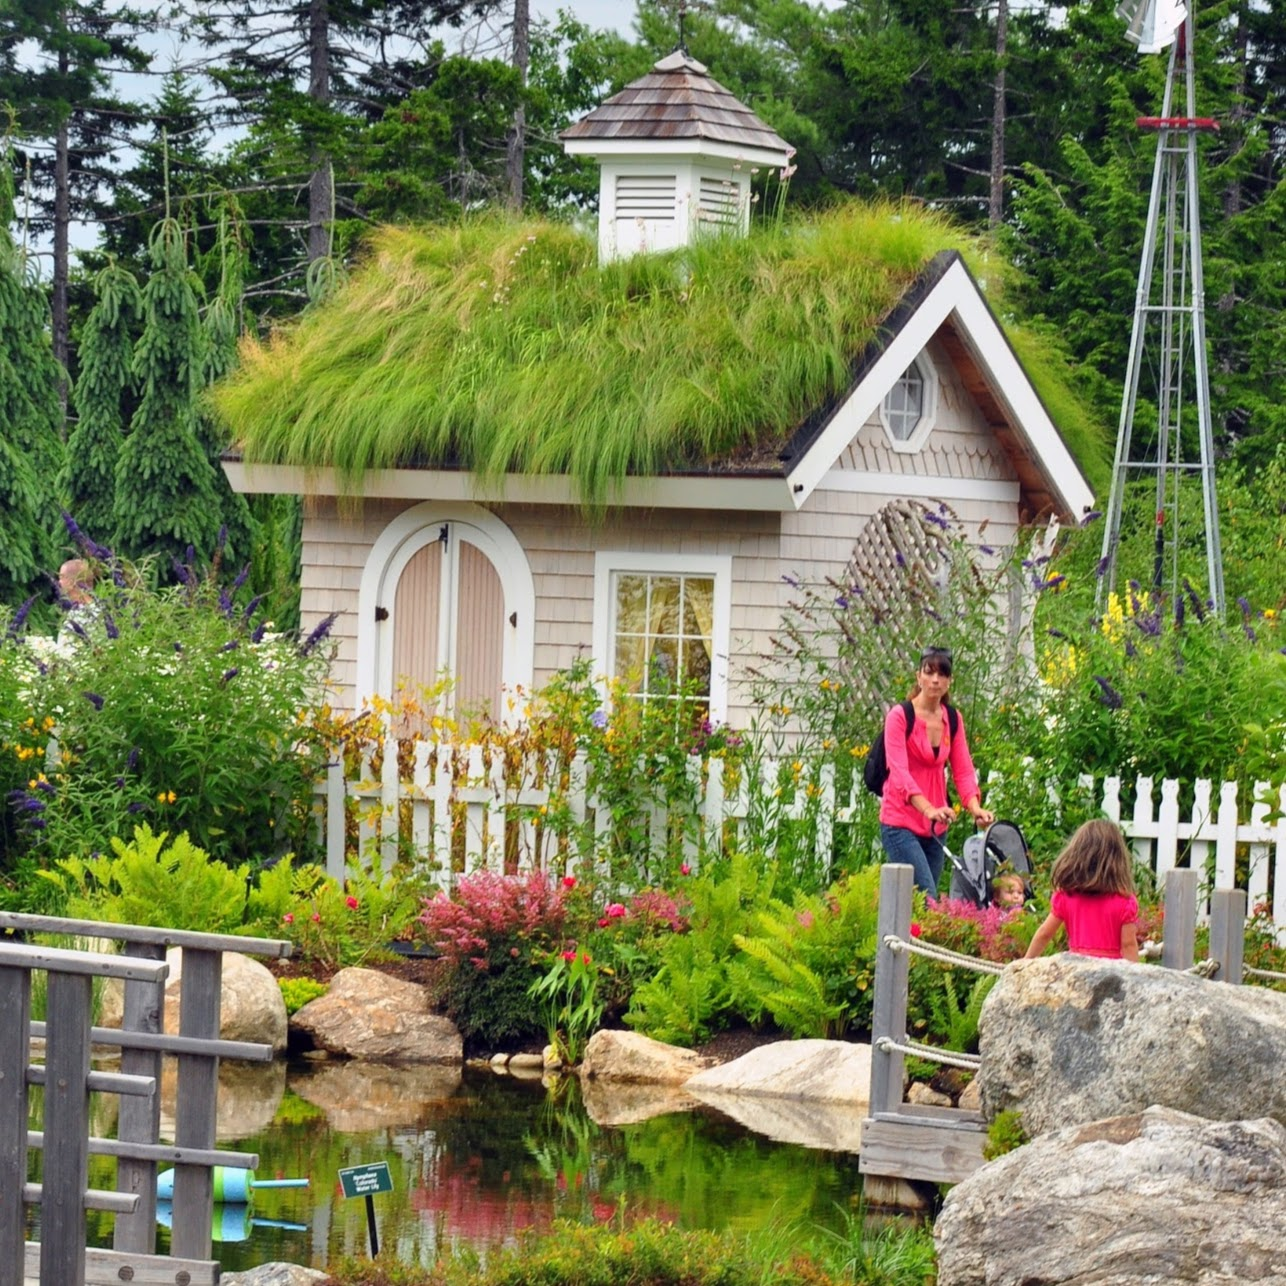 We Will Be Holding A Field Trip To Coastal Maine Botanical Gardens In  Boothbay, Maine On Saturday July 30. We Are Signed Up For A Group Tour With  A Docent ...